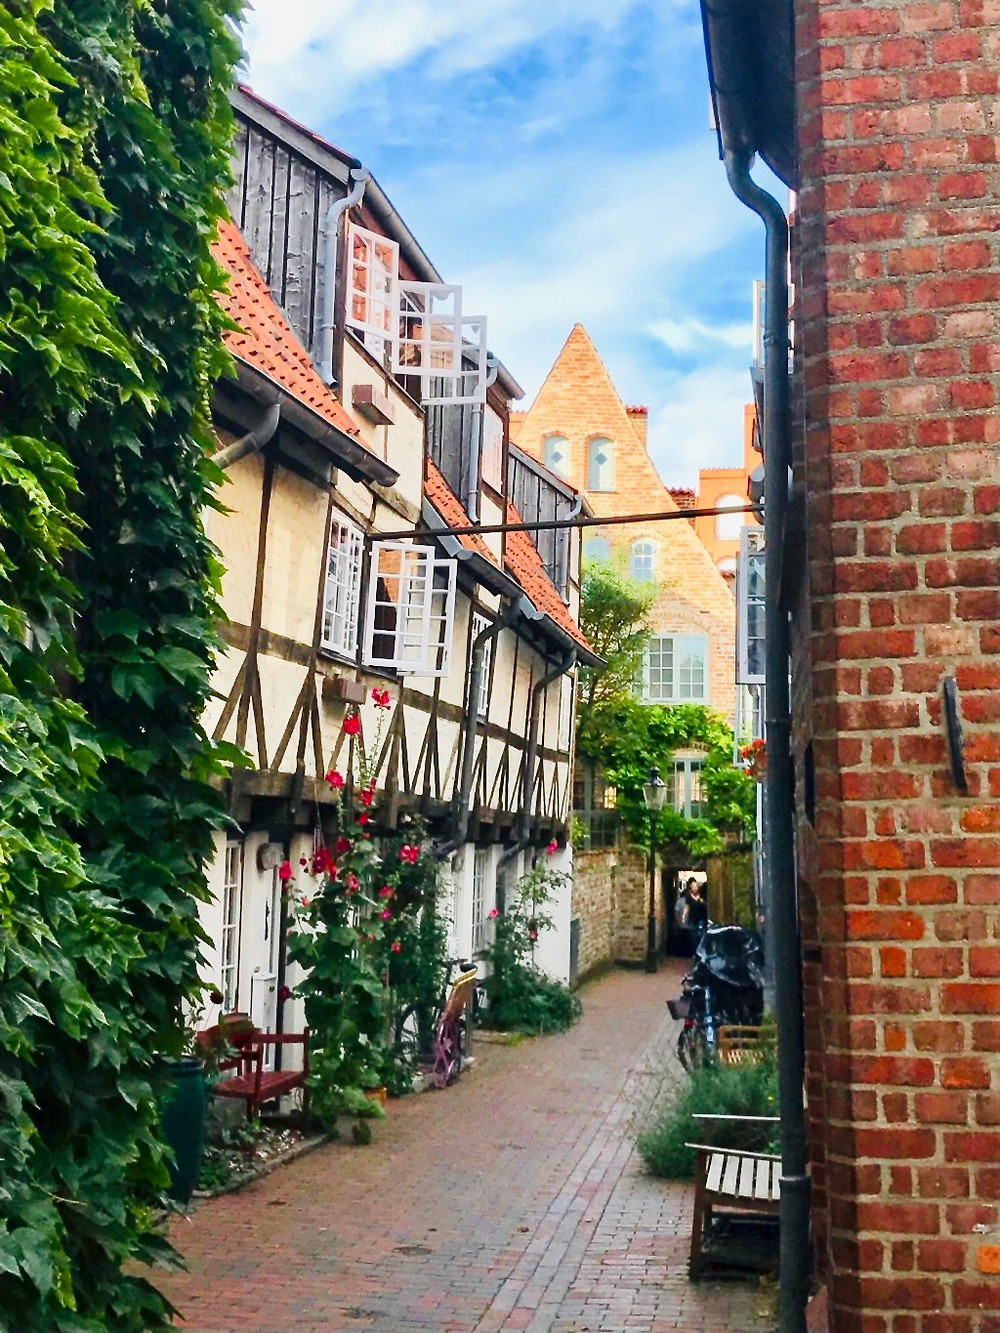 cobbled lane in the UNESCO-listed Lubeck